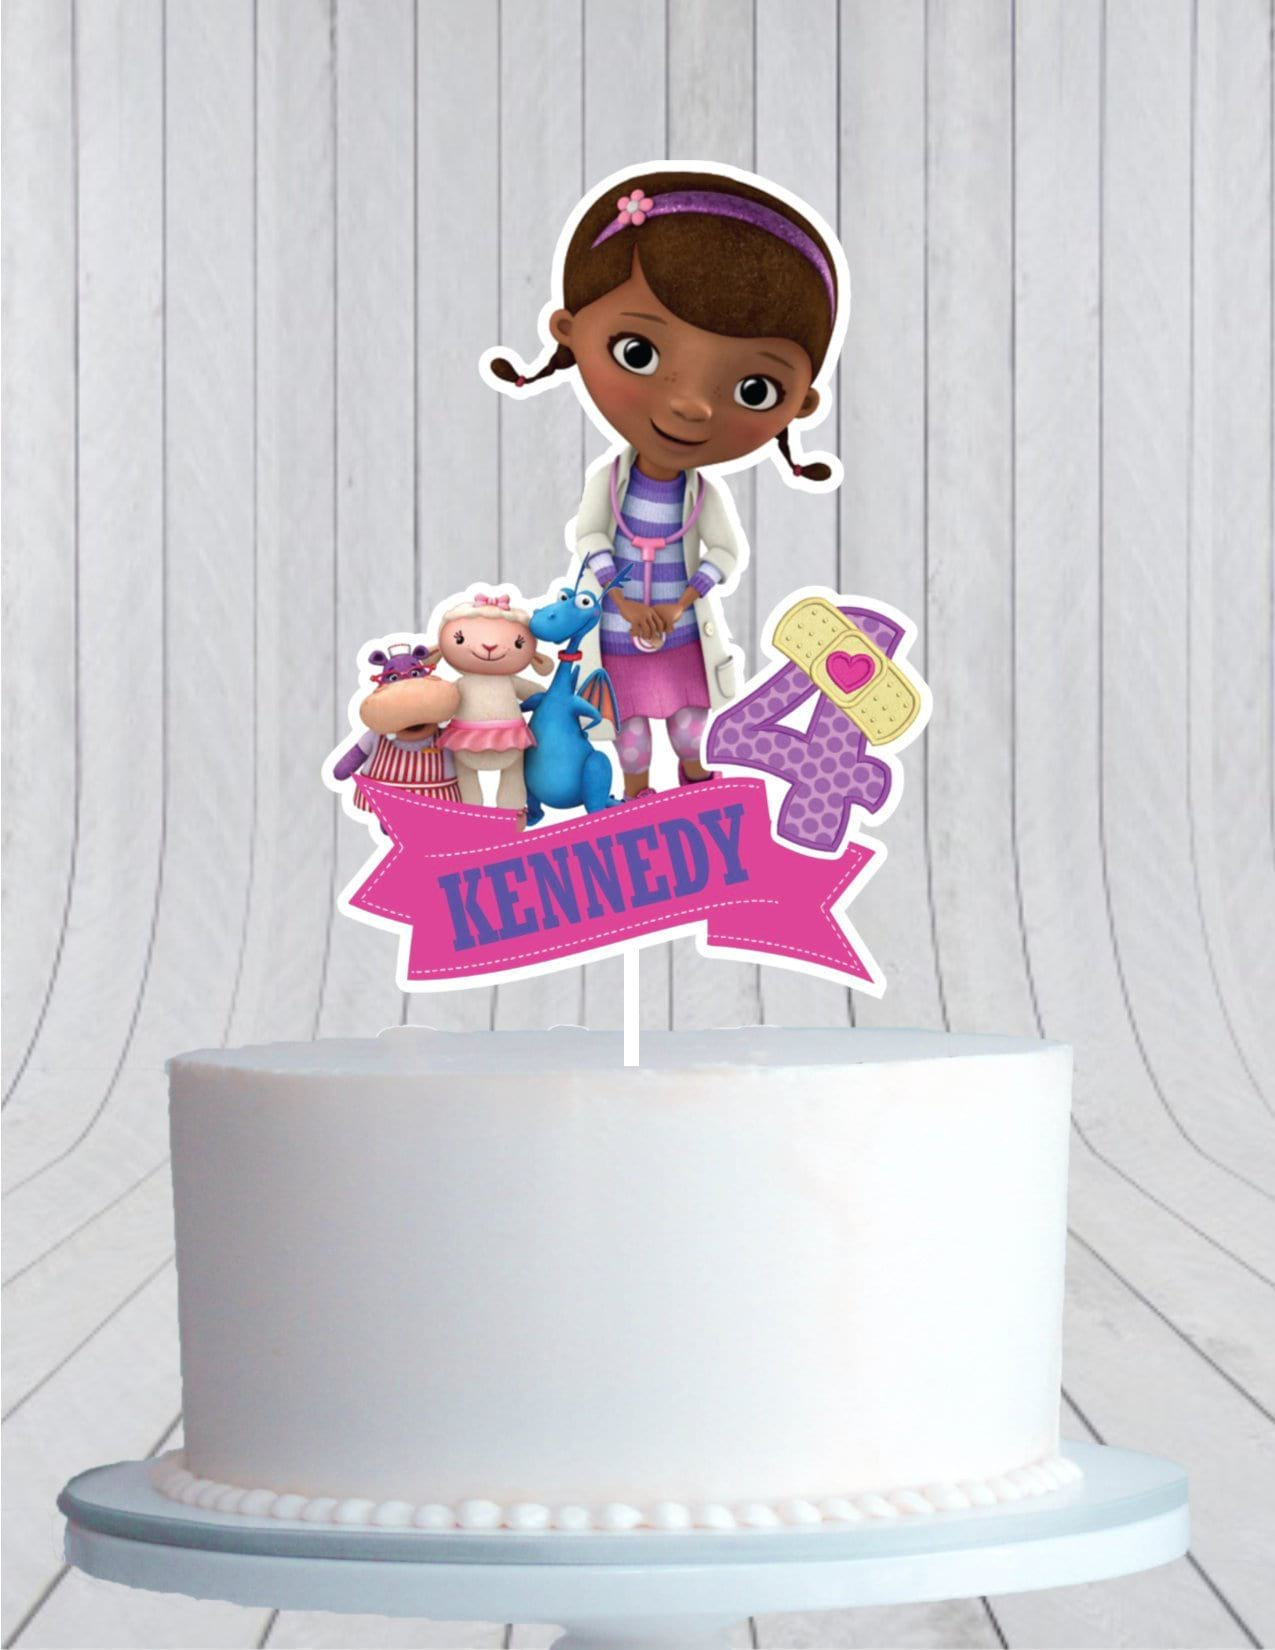 Astonishing Doc Mcstuffins Birthday Cake Topper Cmpartycreations Birthday Cards Printable Nowaargucafe Filternl